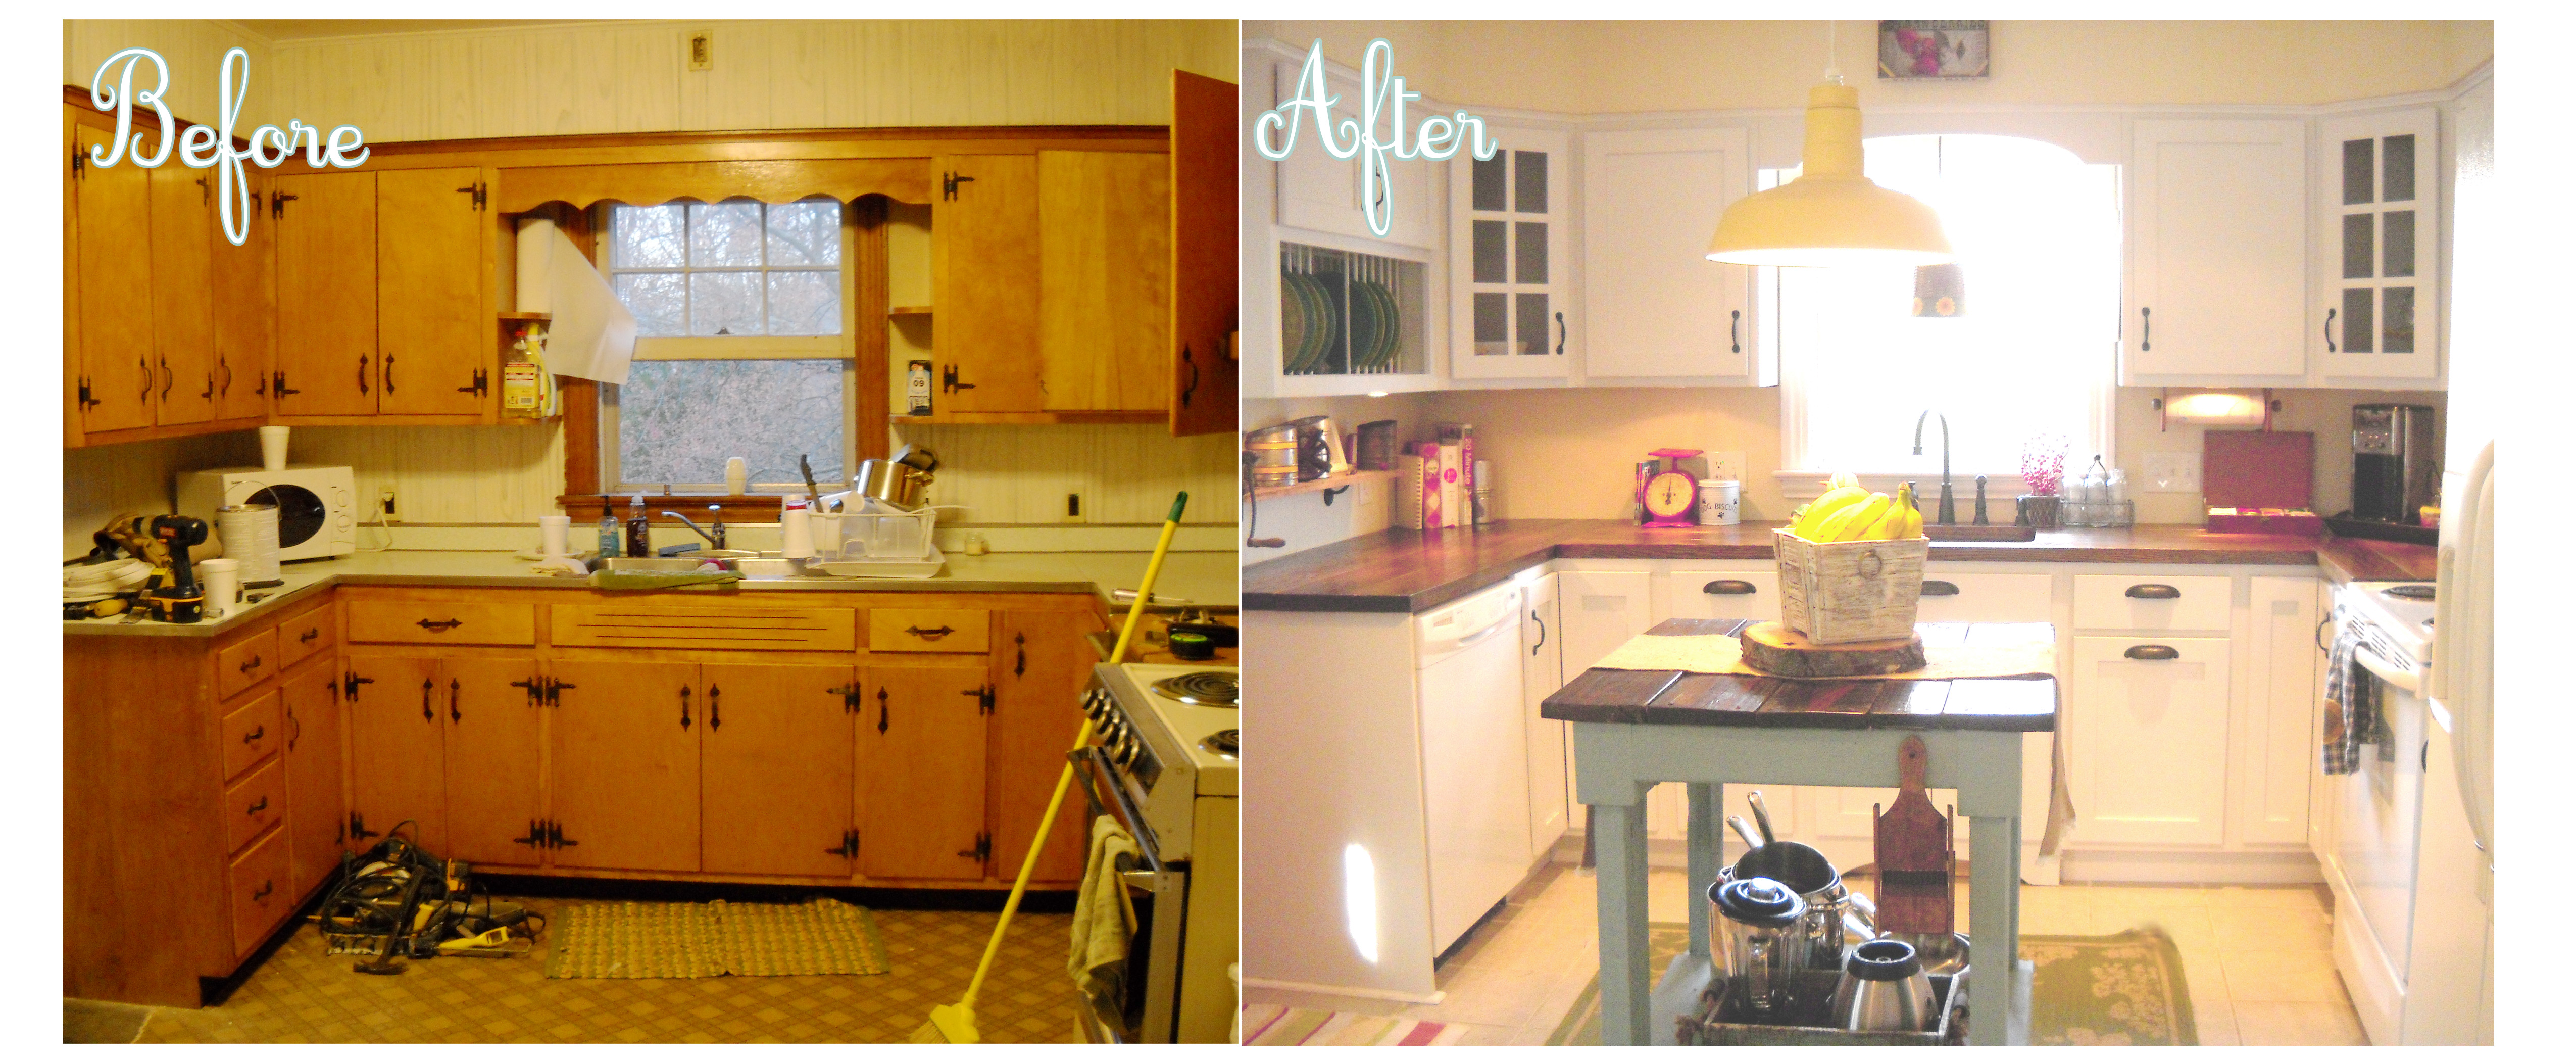 Elegant Kitchen Remodel Before And After Pictures Of Cool Ideas Design Photos Remodels On Home